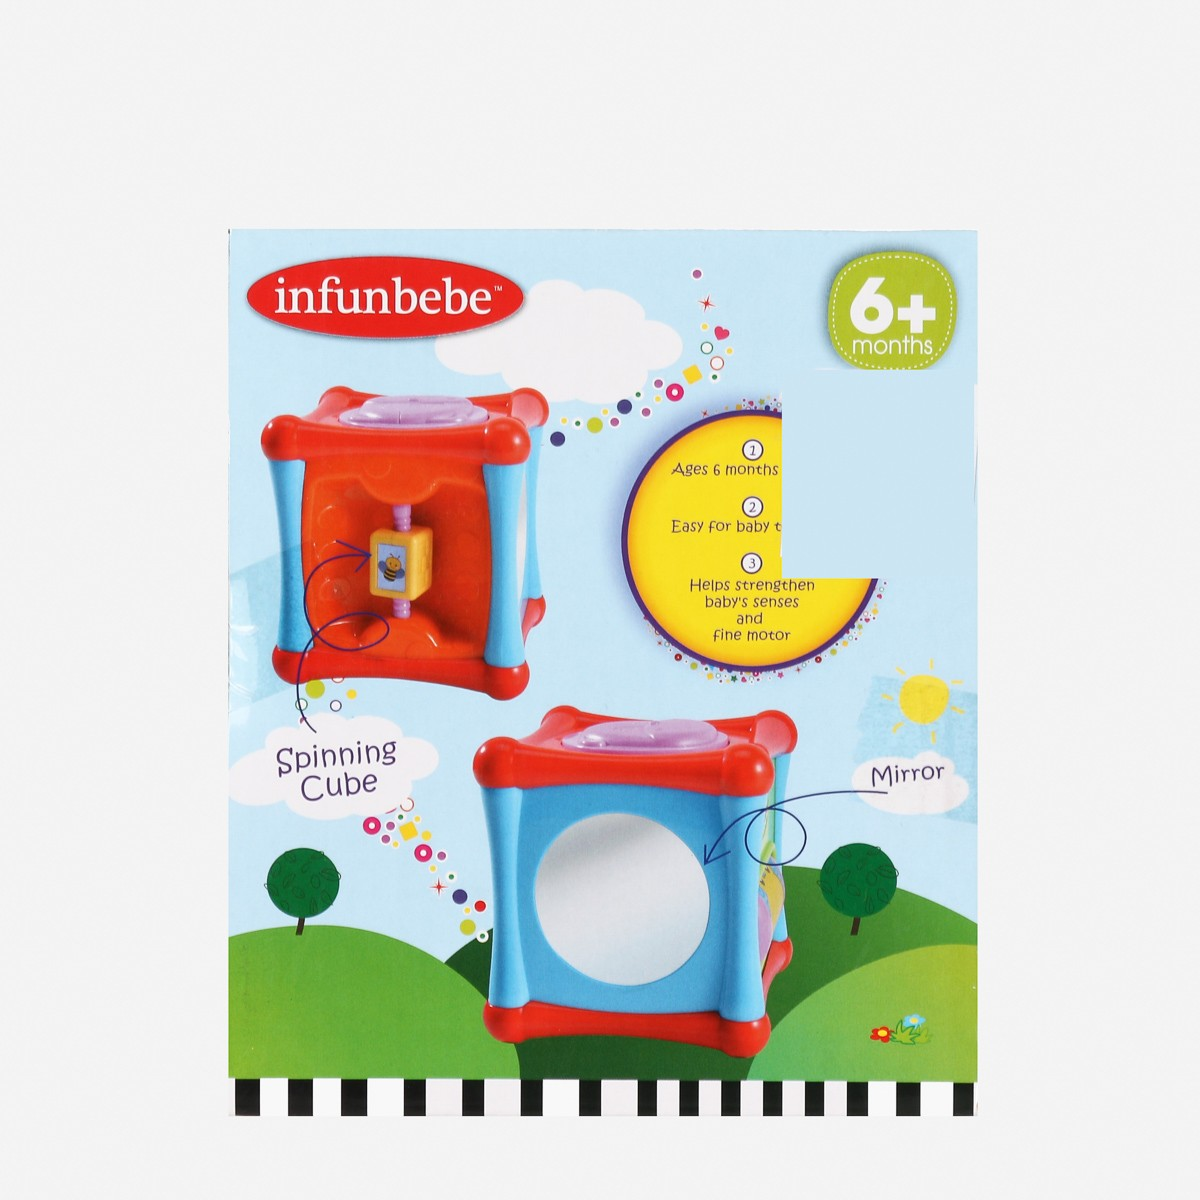 Infunbebe My First Activity Cube Toys for 6m+